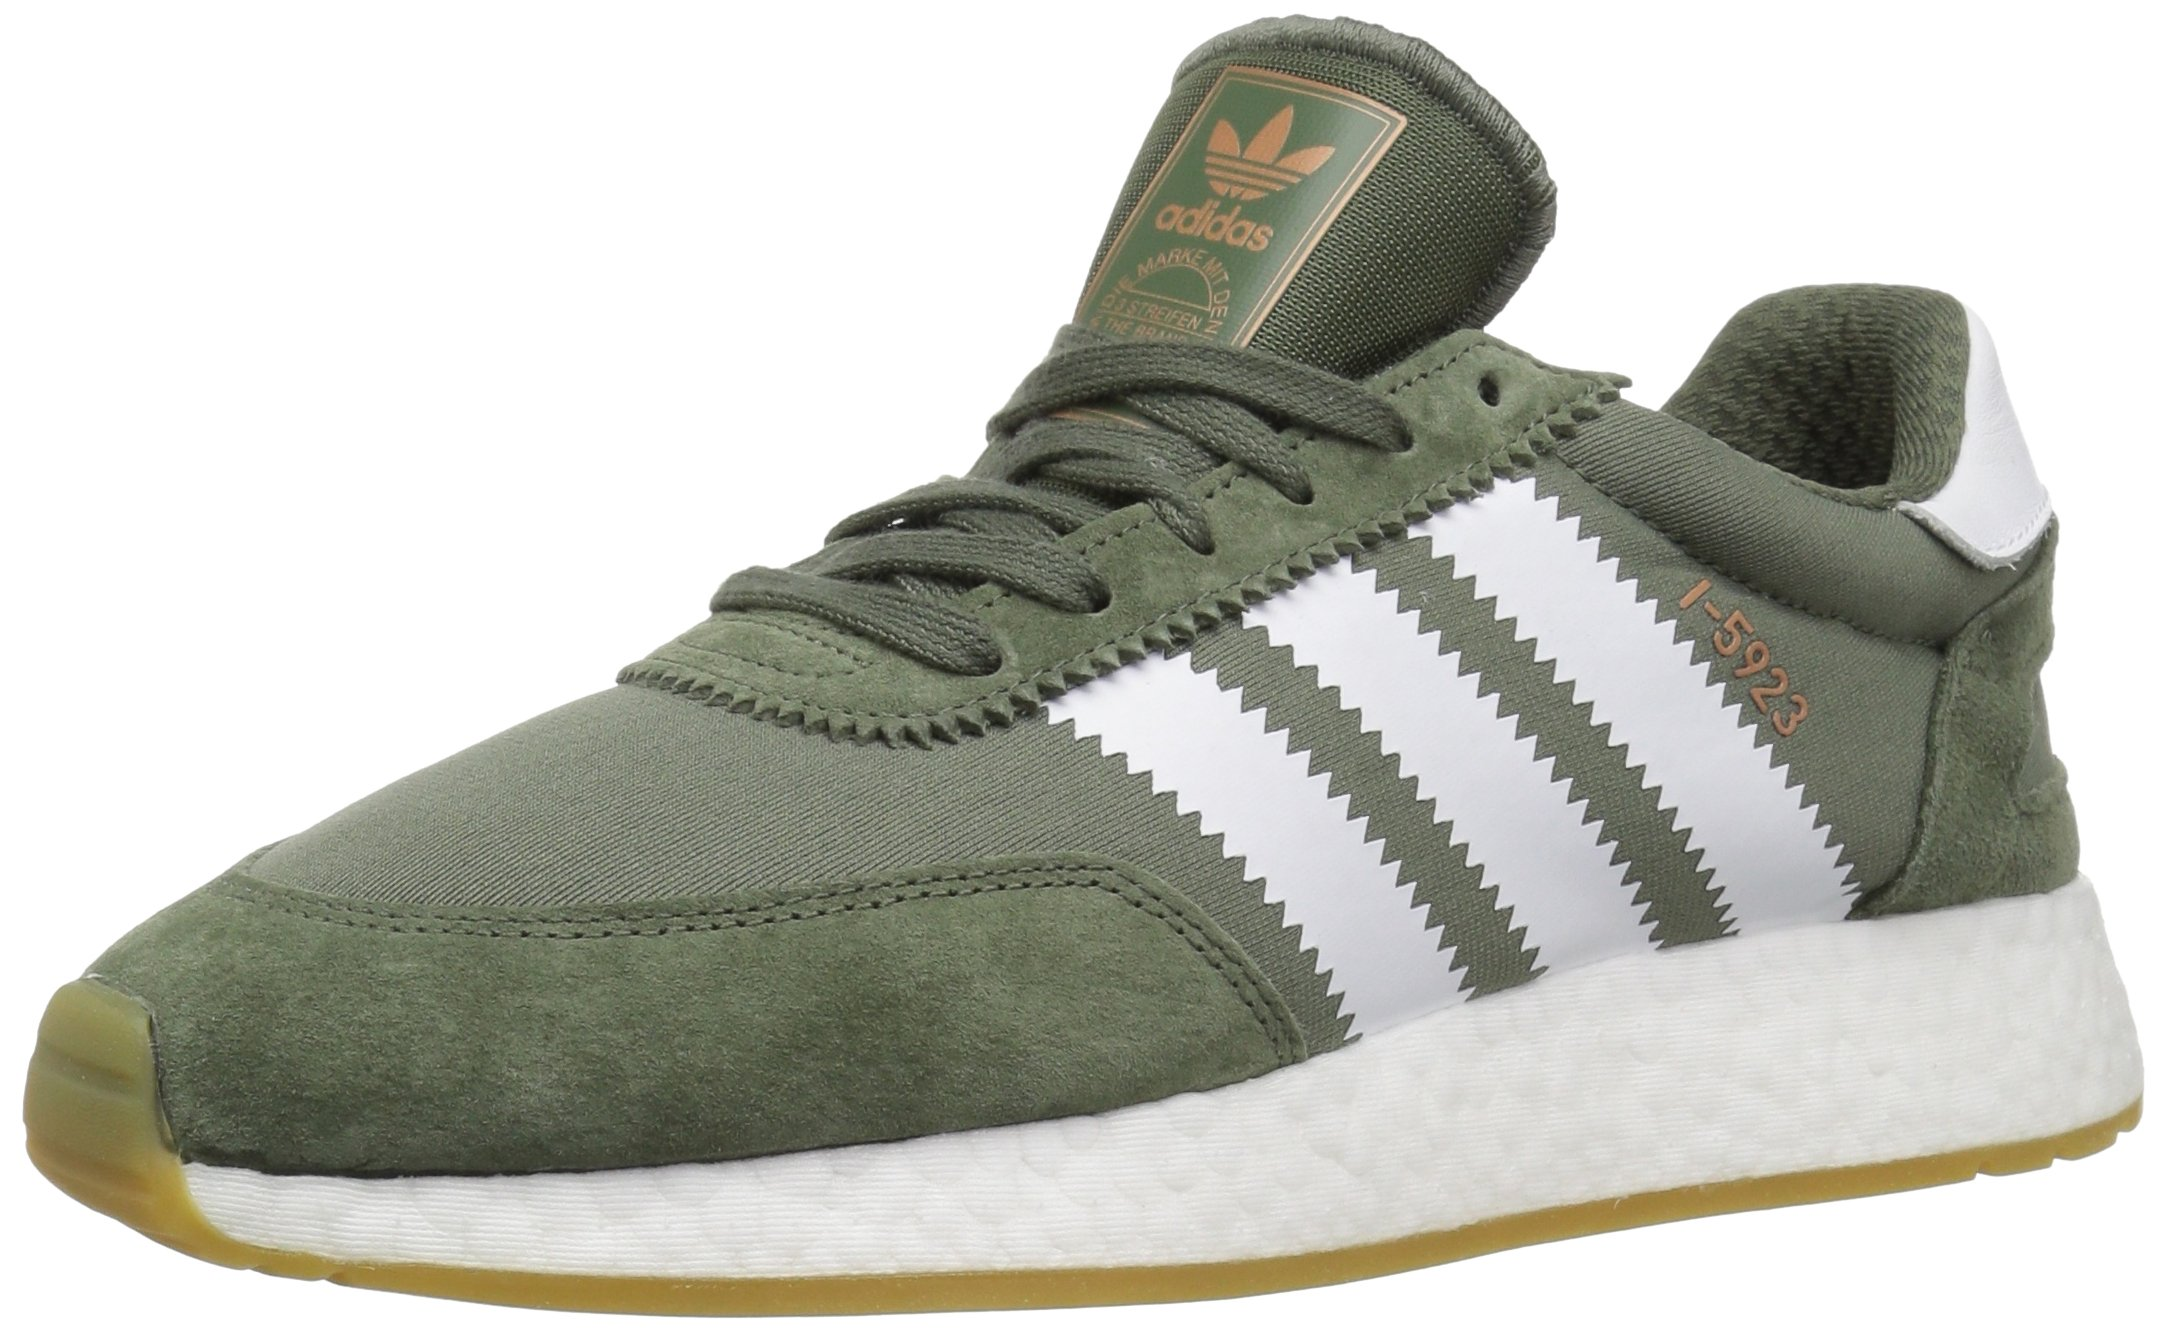 adidas Originals Men's I-5923, Base Green/White/Gum, 10.5 M US by adidas Originals